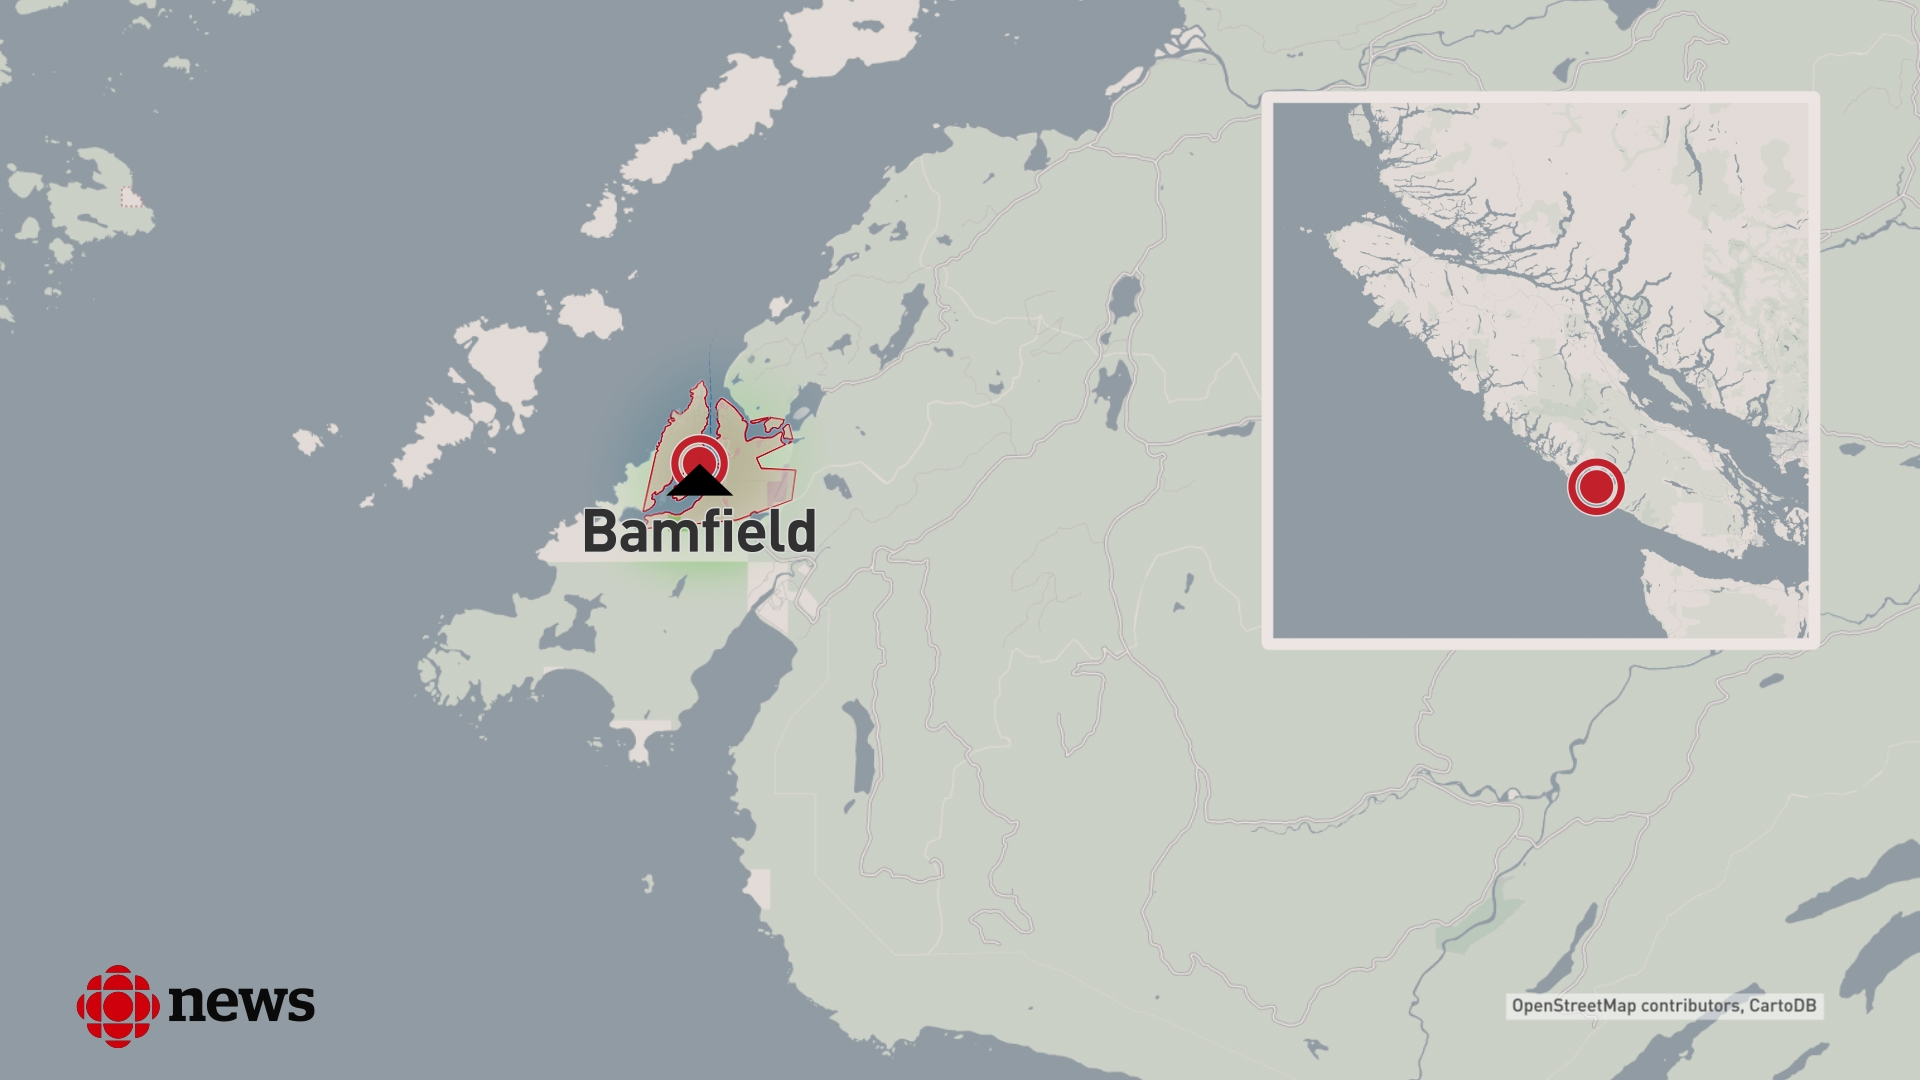 The village of Bamfield is located on the remote west coast of Vancouver Island.